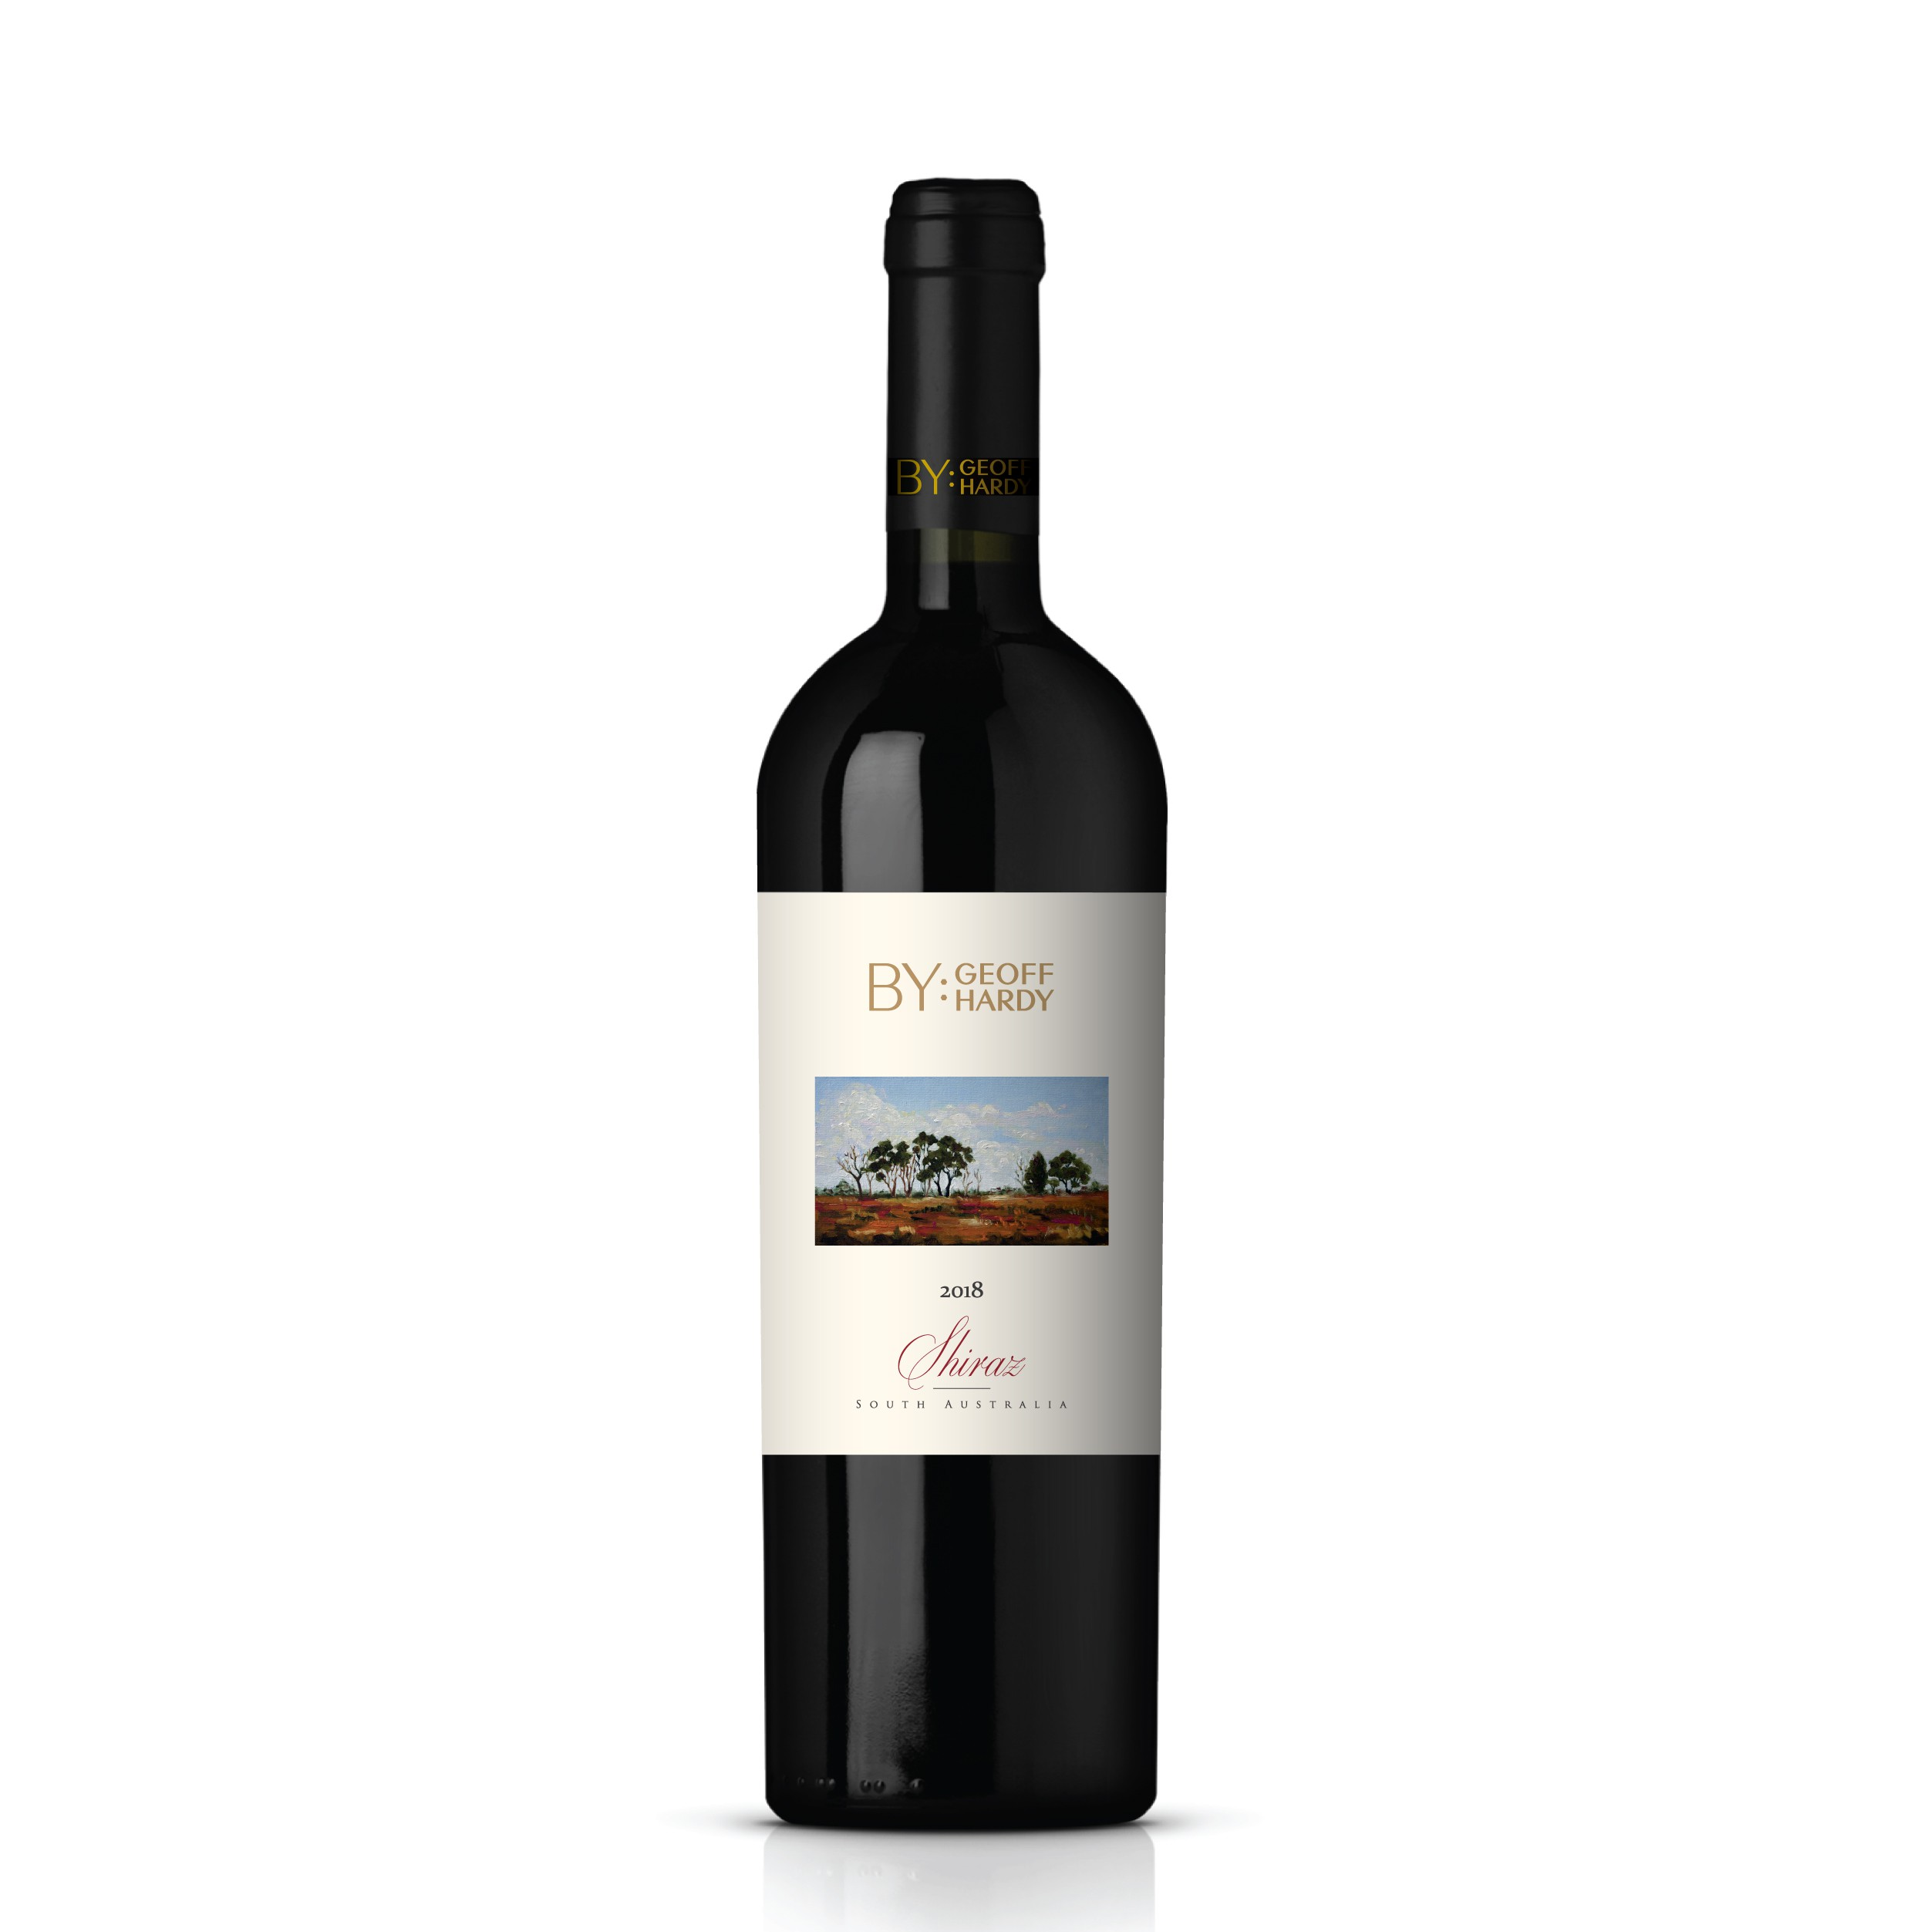 Wine label on the traditional side